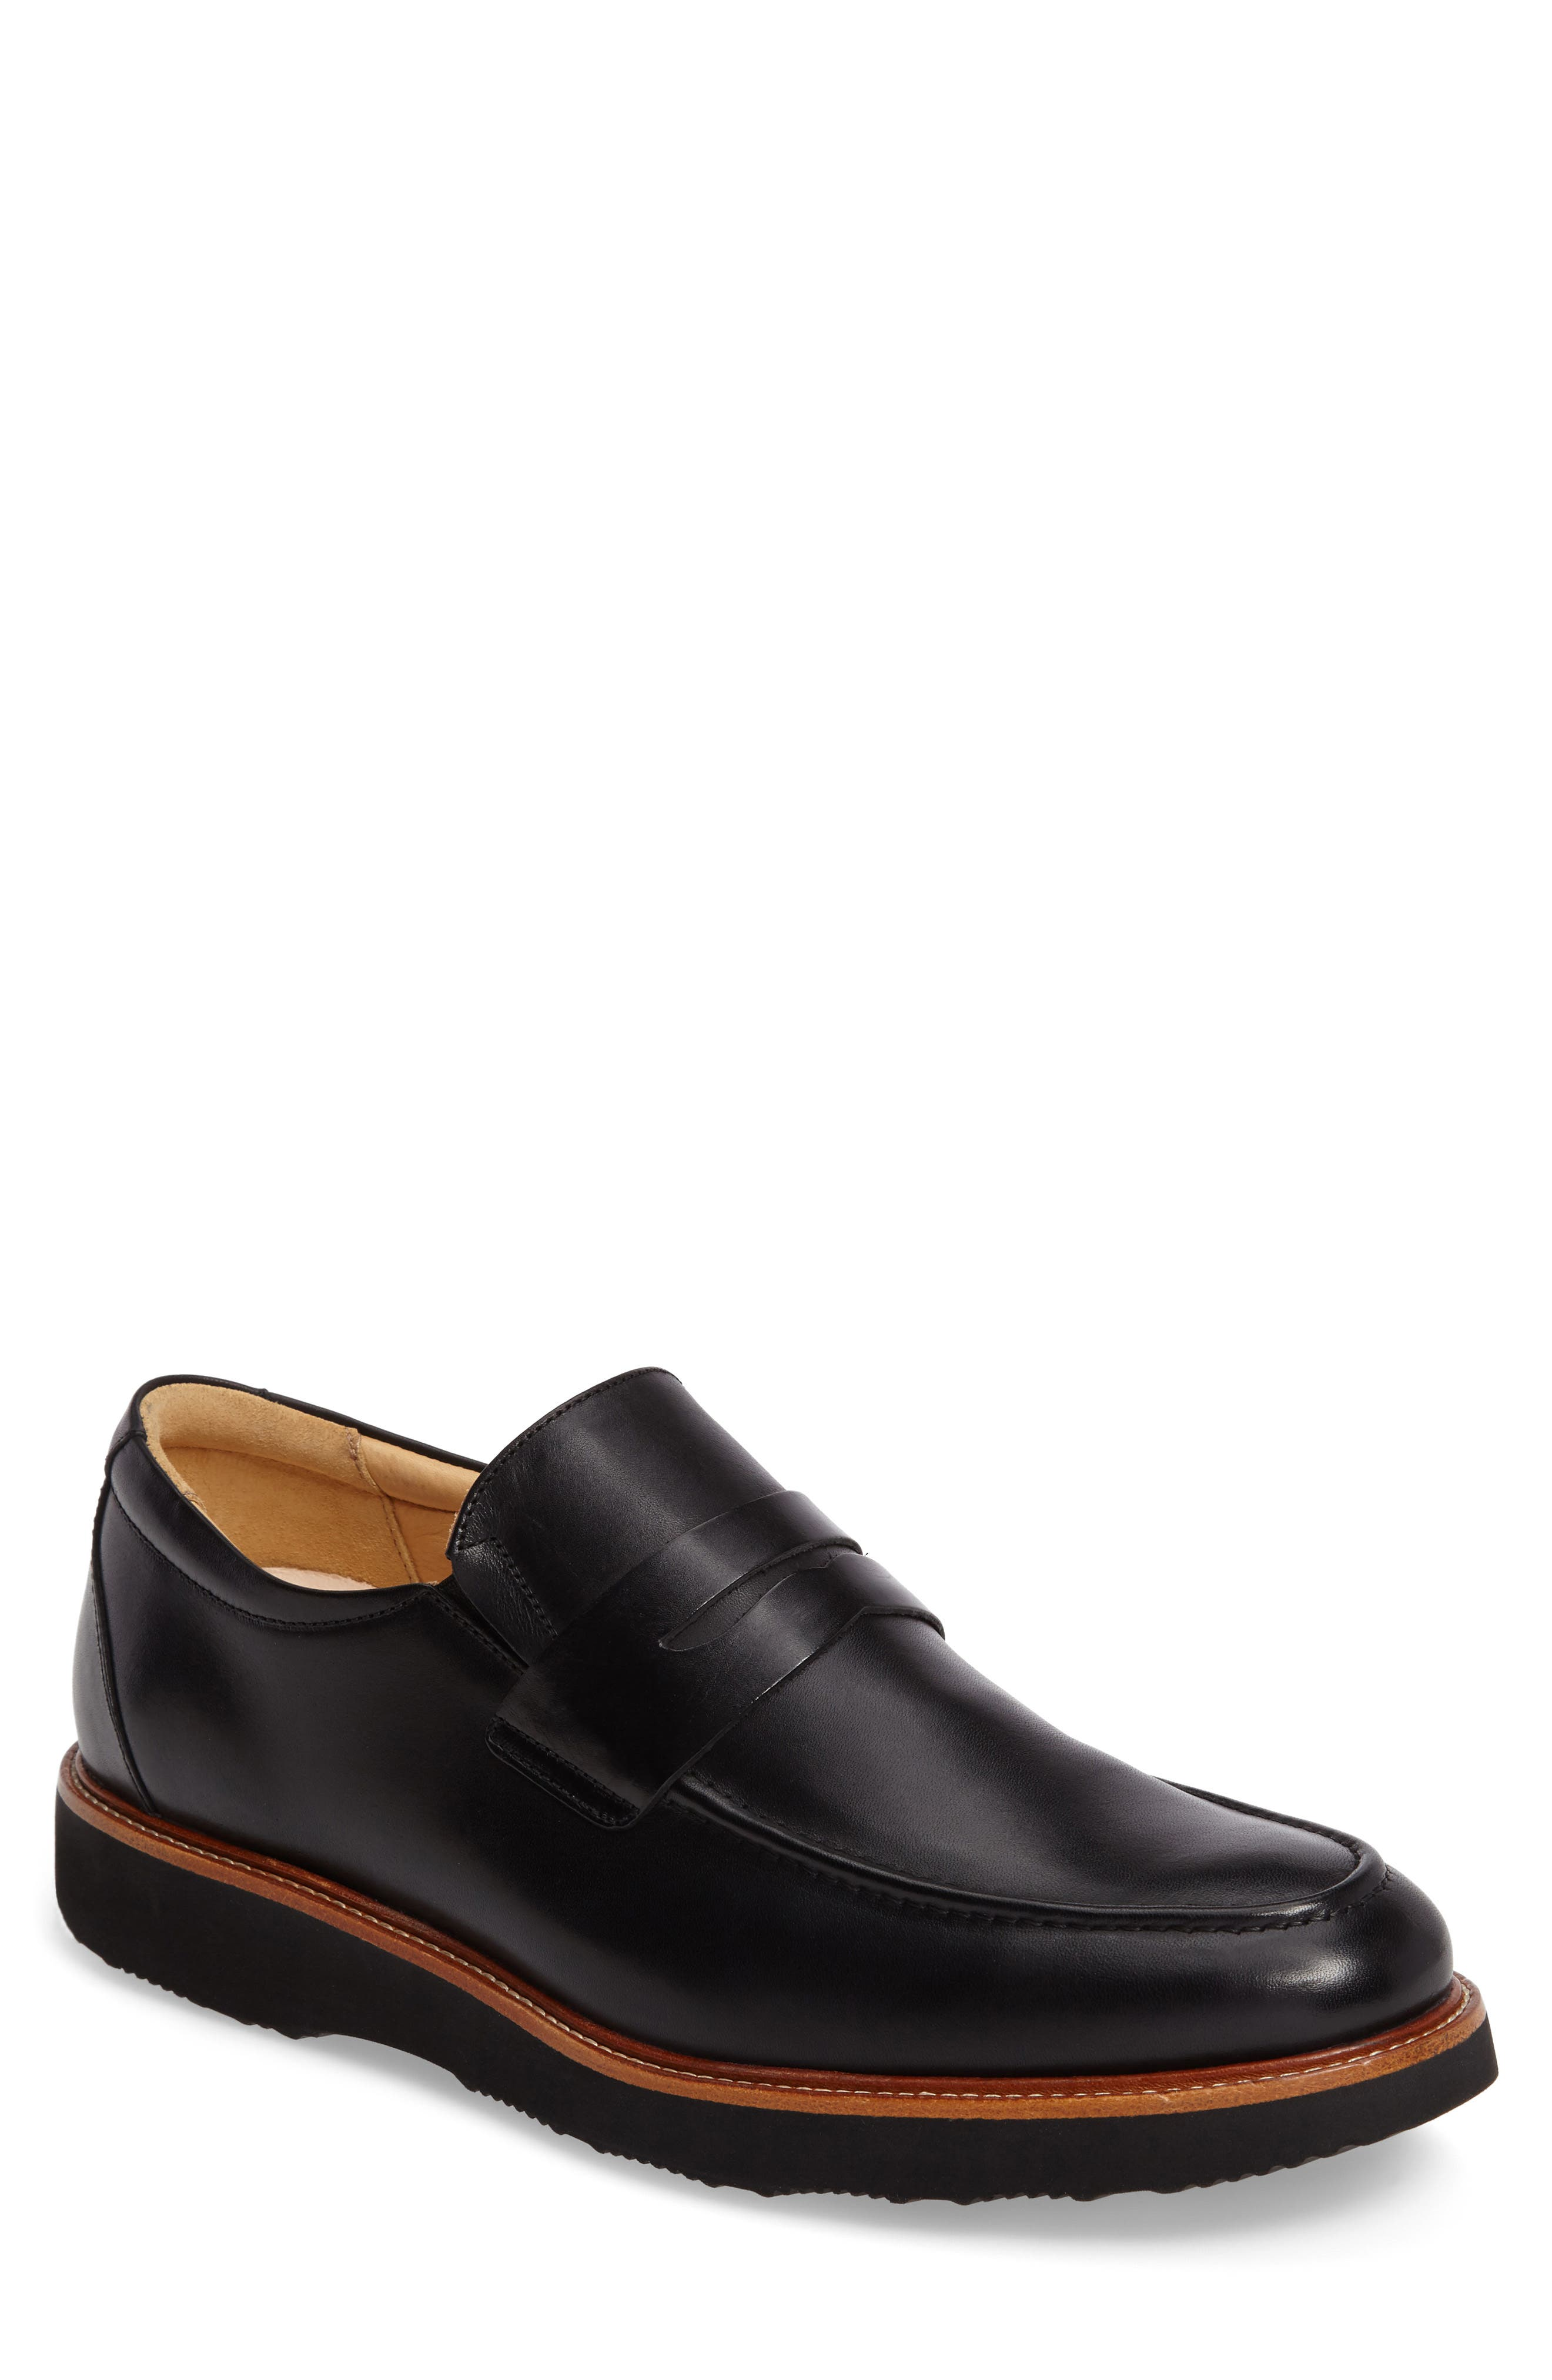 Ivy Legend Penny Loafer,                         Main,                         color, Black Full Grain